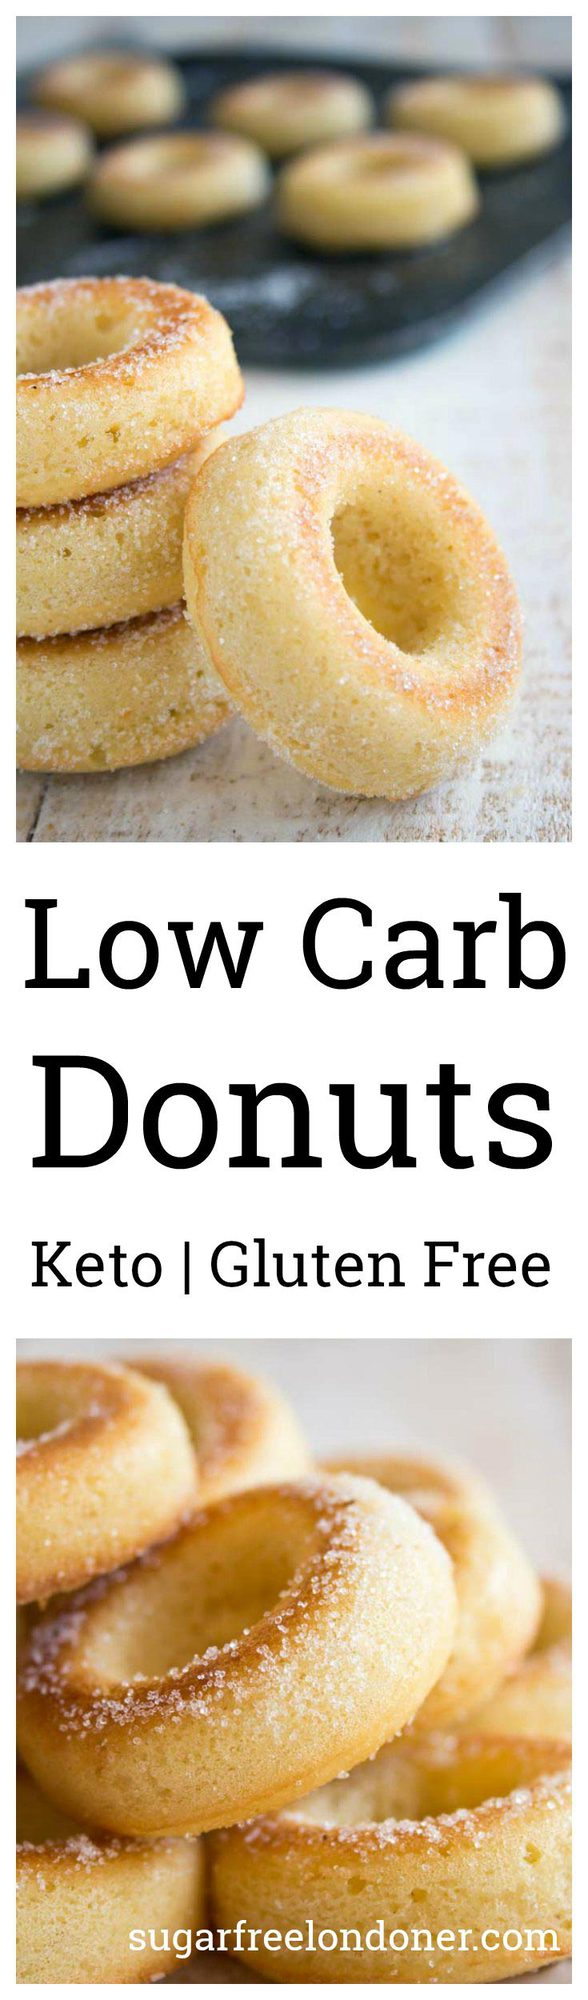 These low carb donuts taste just like the real thing, just without all the sugar and carbs! They are deliciously moist and spongy, with a hint of vanilla flavour. Perfect for Keto, sugar free and gluten free diets. #keto #lowcarb #sugarfree #diabetic #dessert #donuts #LCHF